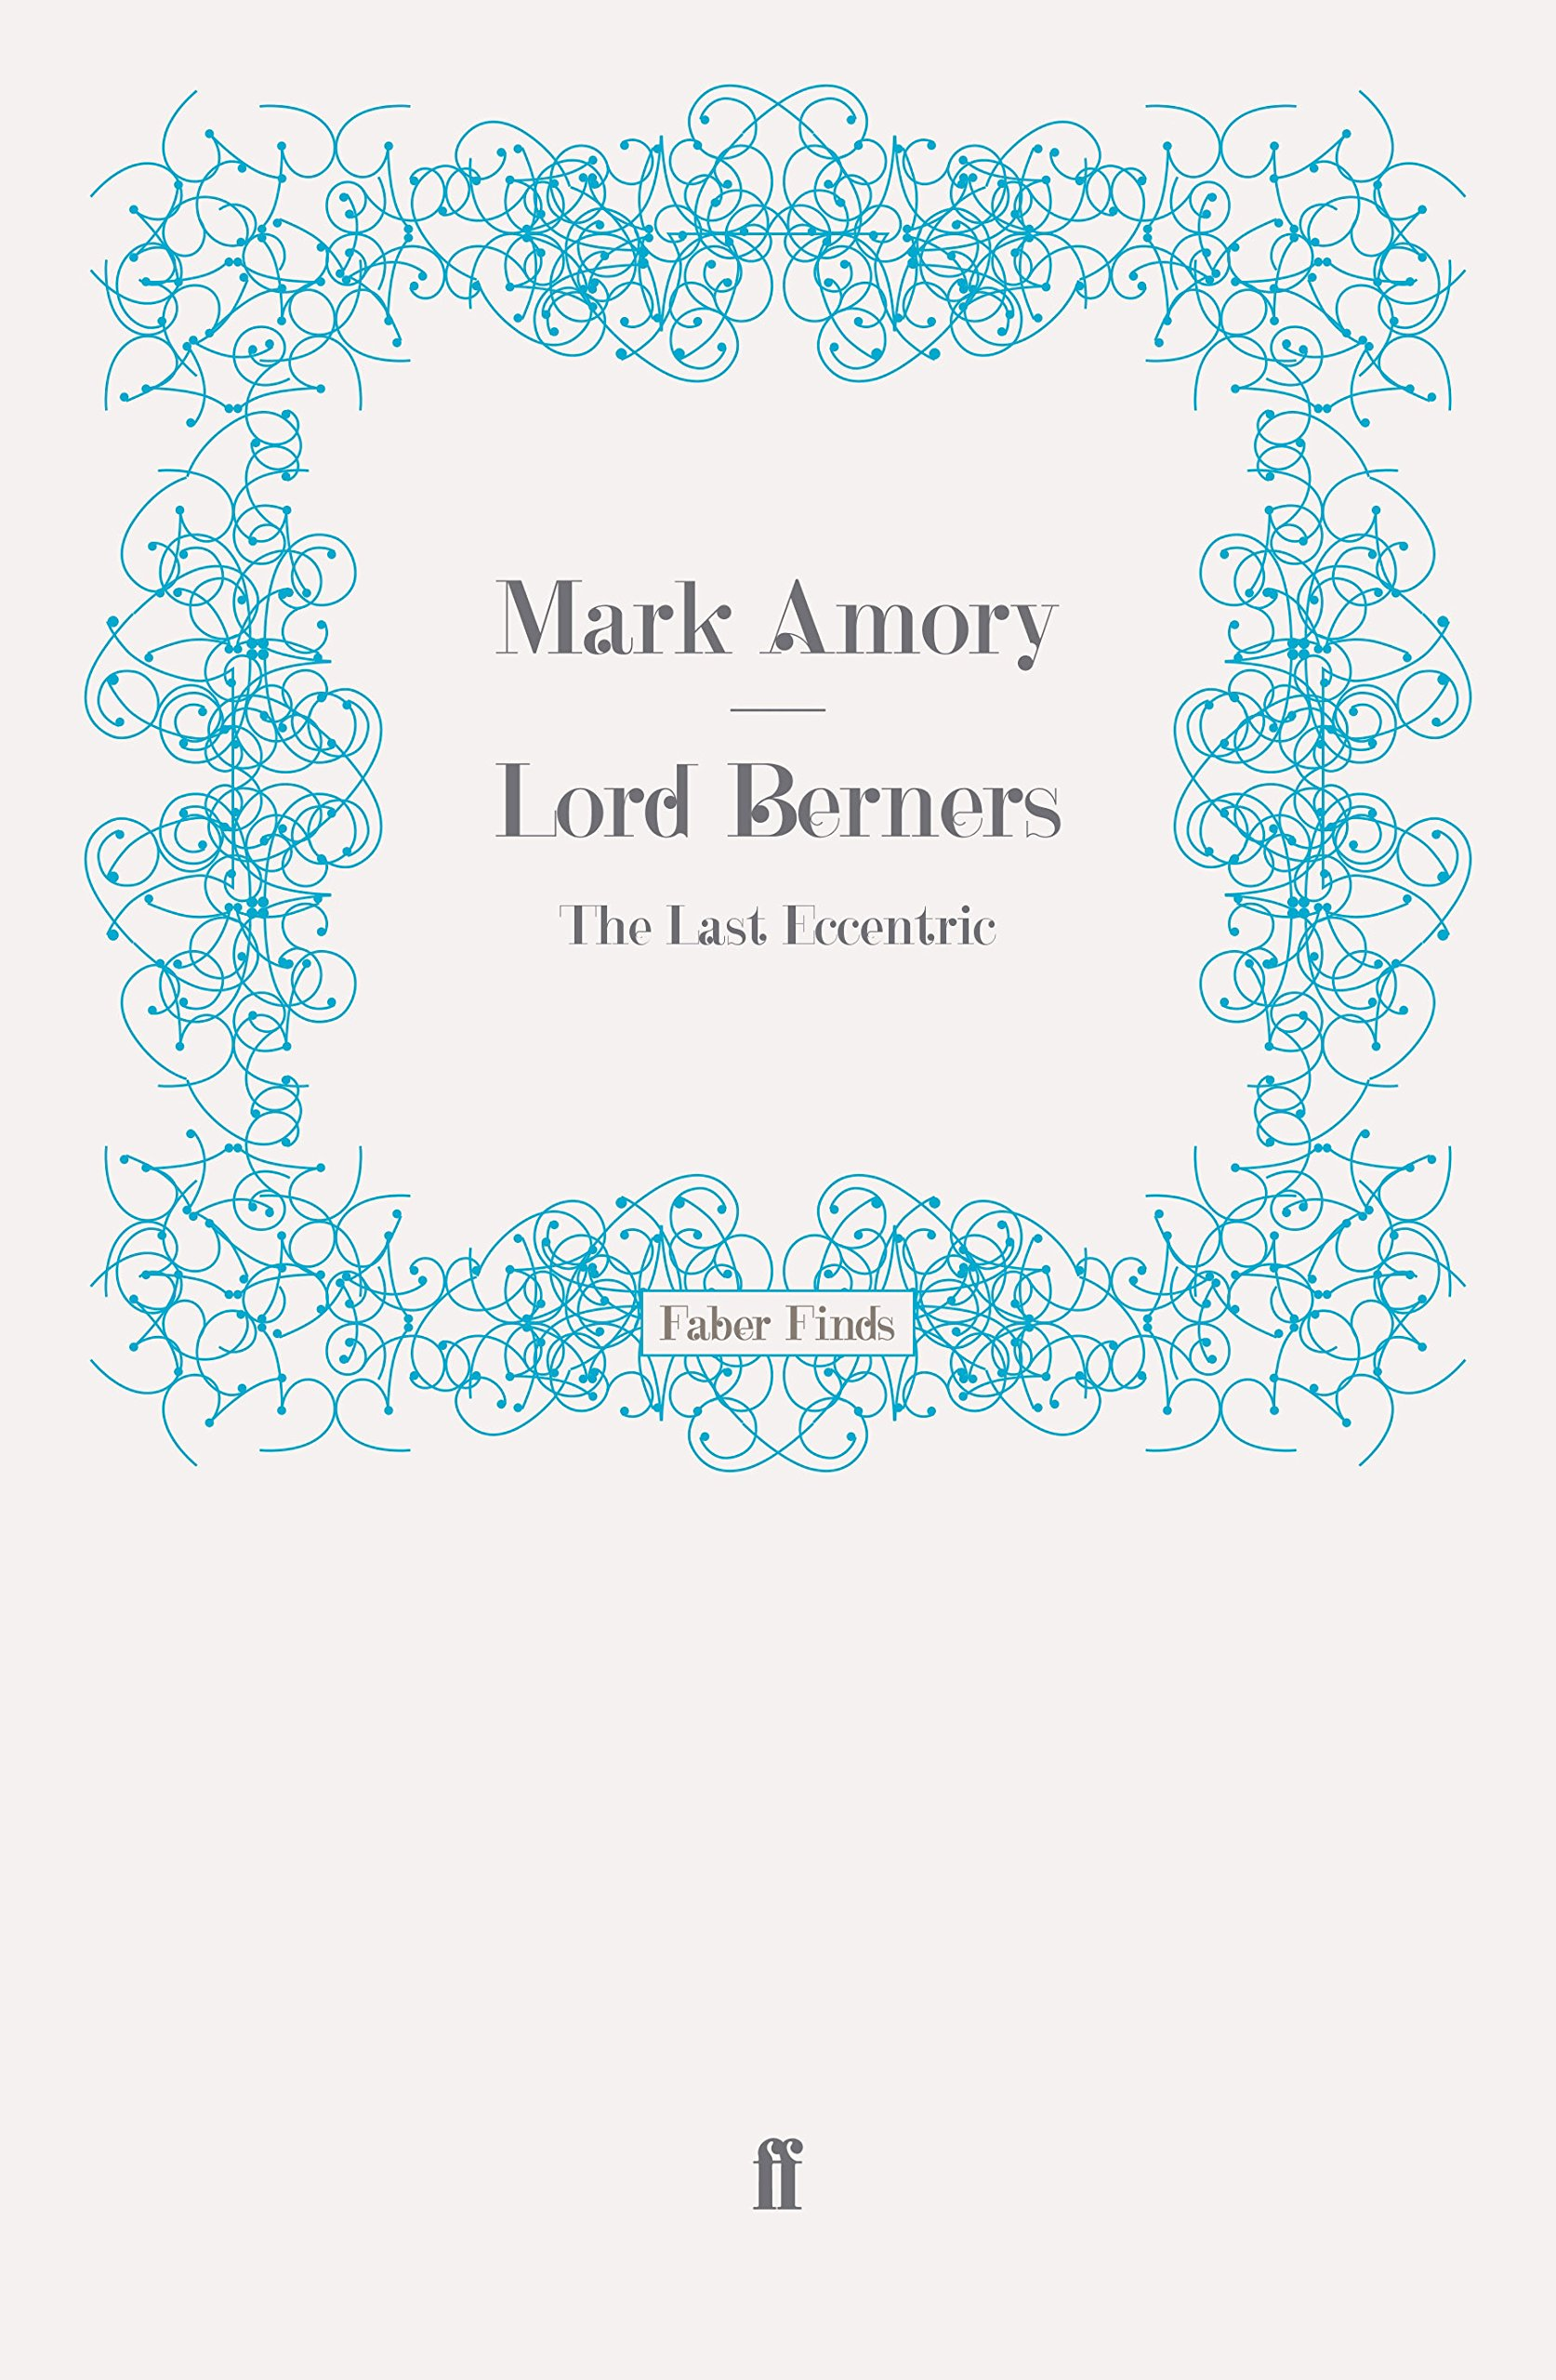 Lord berners the last eccentric mark amory 9780571247653 amazon lord berners the last eccentric mark amory 9780571247653 amazon books fandeluxe Choice Image